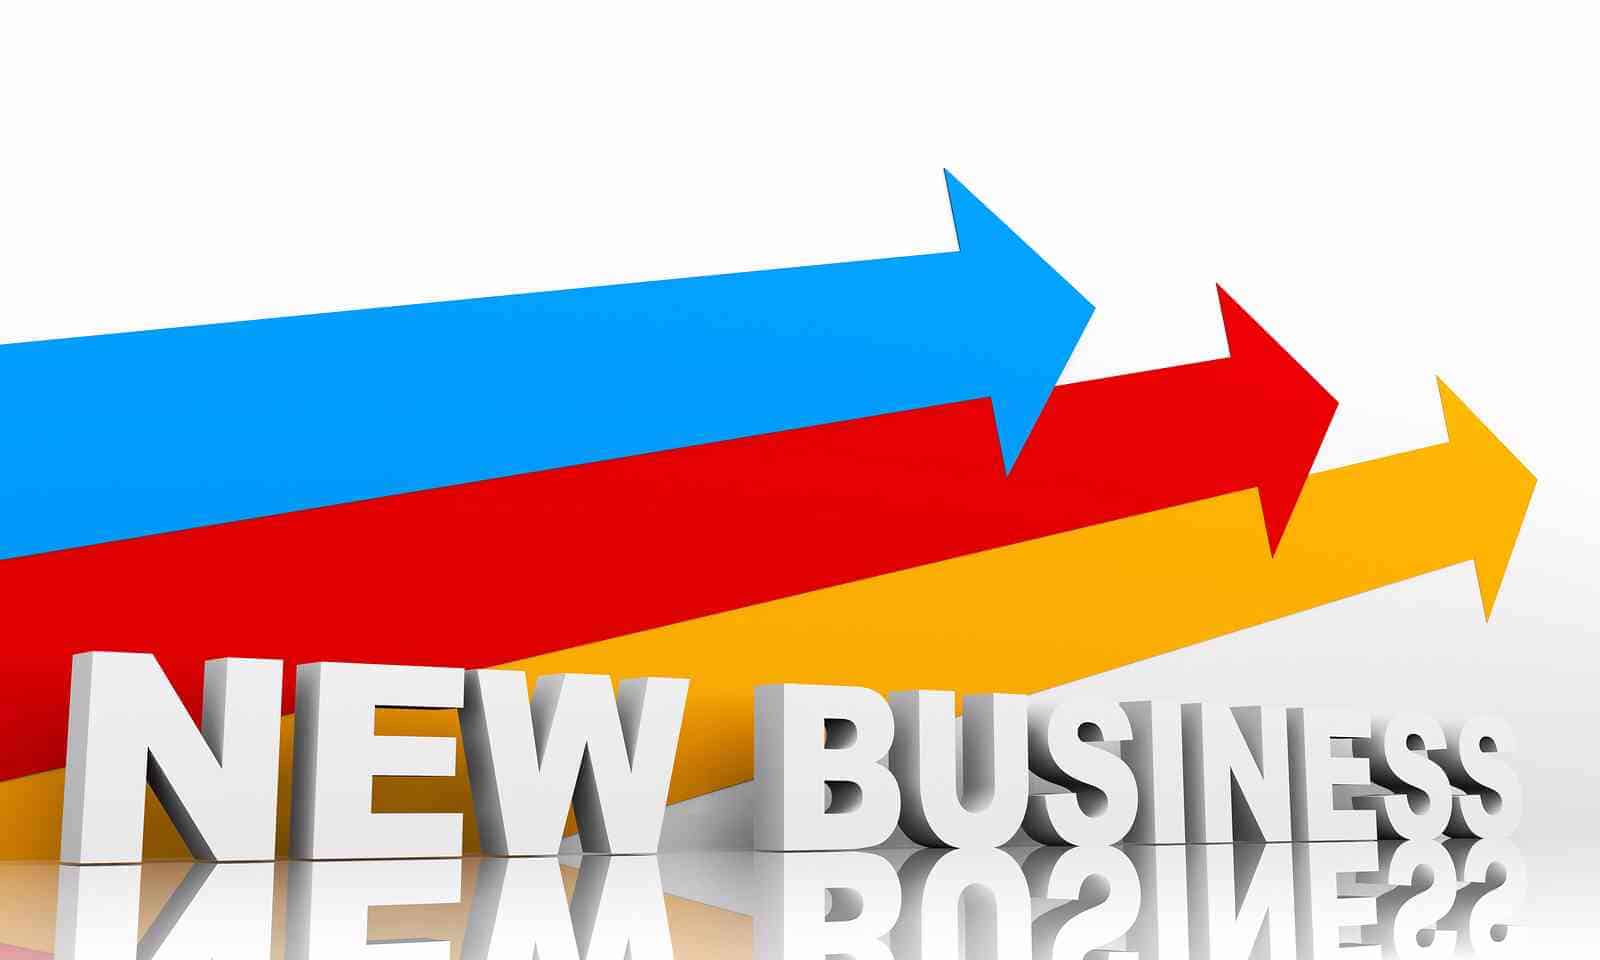 Top 20 New Business Ideas In India for 2020